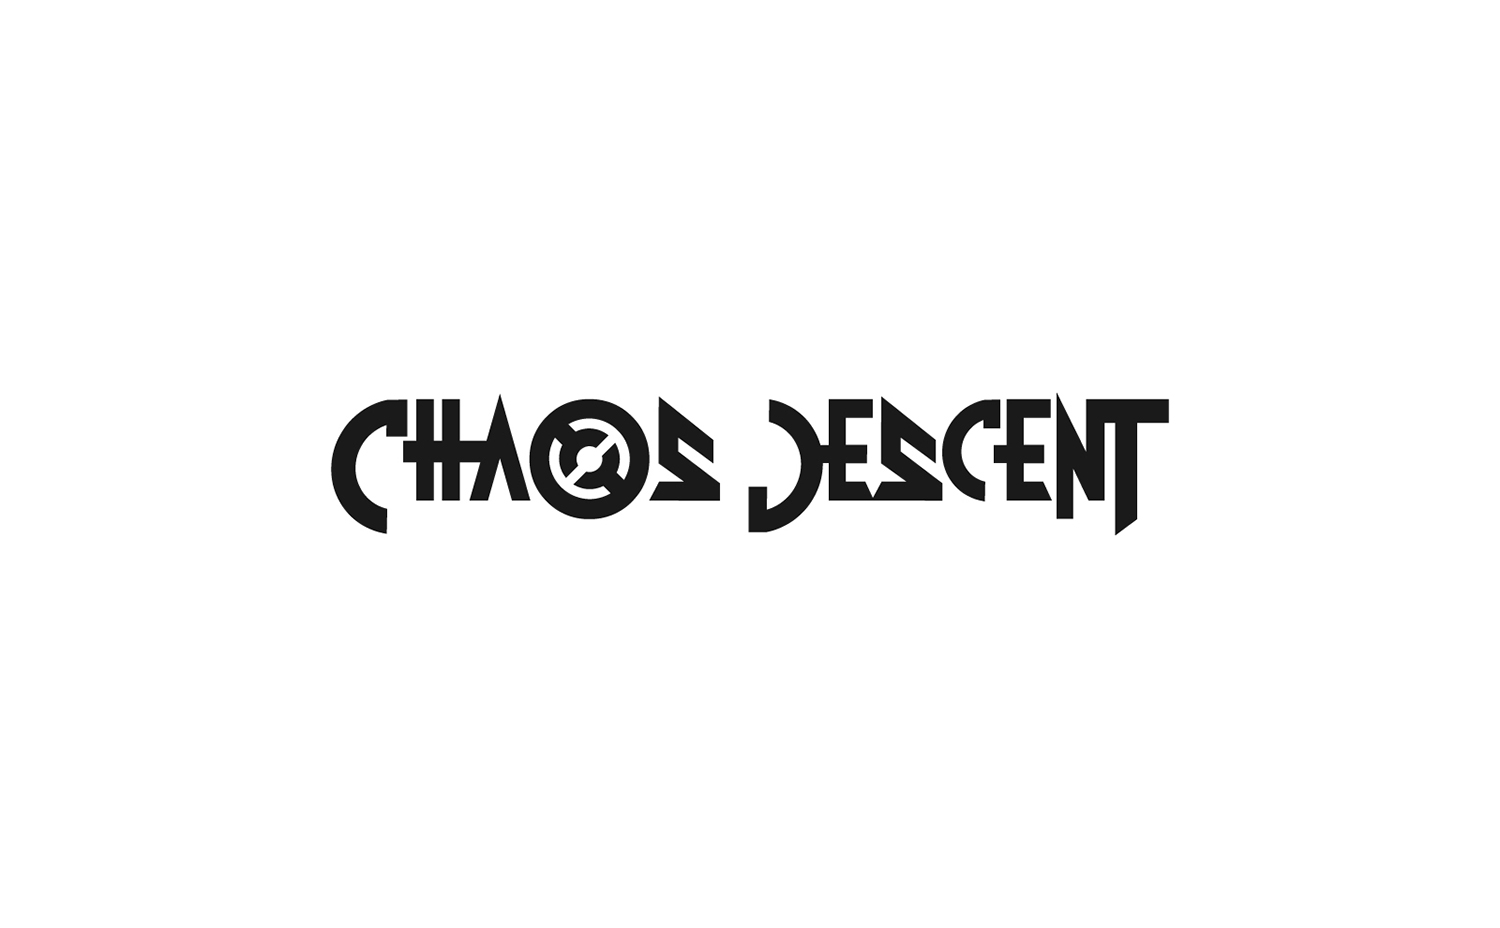 Chaos-Descent-A New- Add4